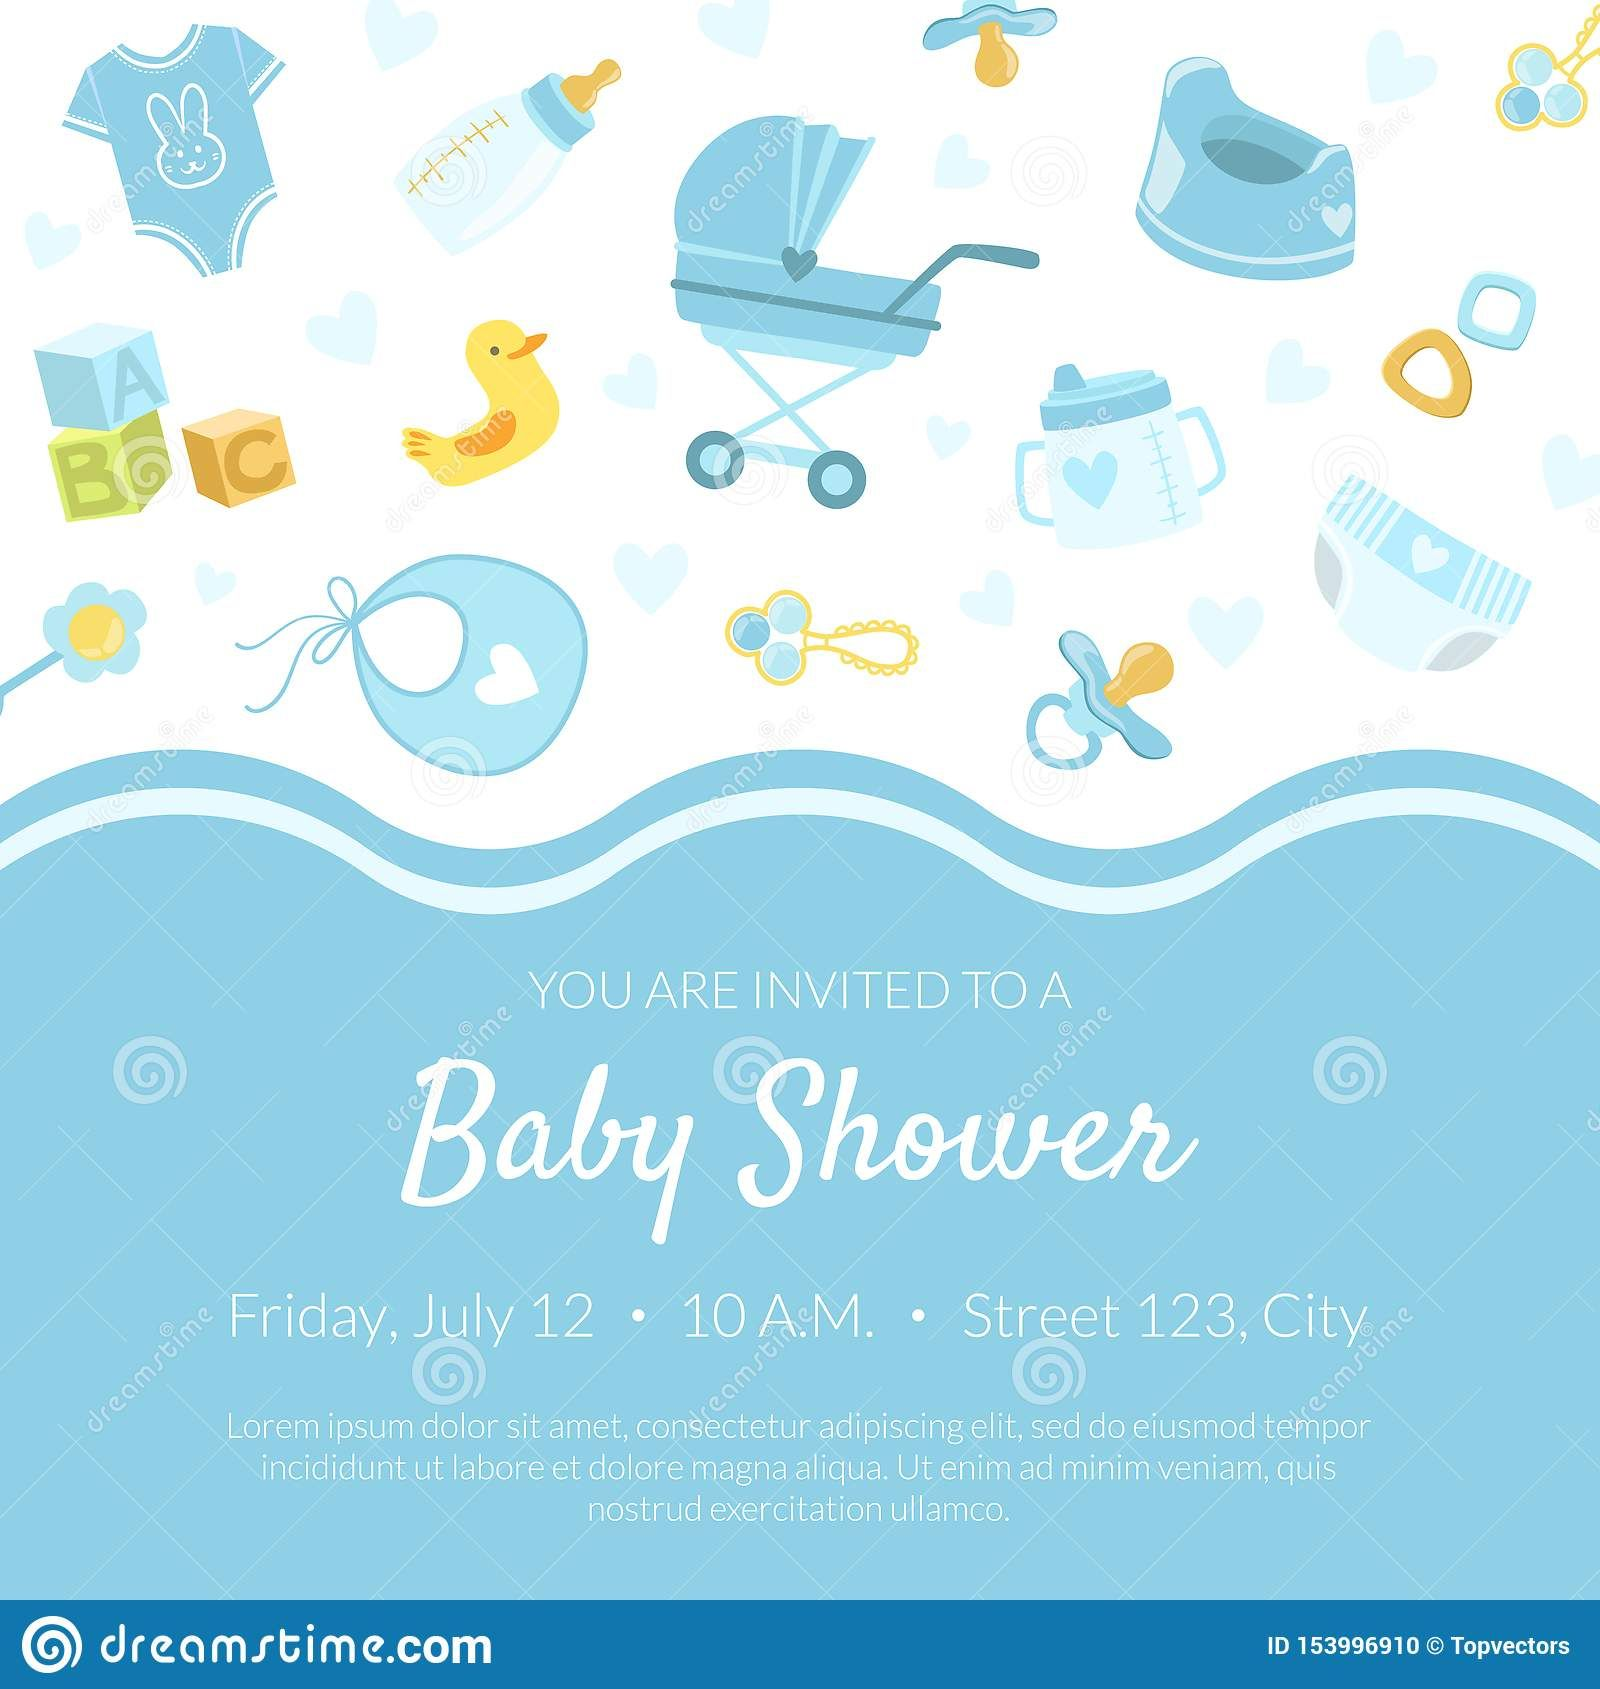 , The charming Baby Shower Invitation Banner Template, Light Blue Card With In Baby Shower Banner Template photograph below, is section…, My Pop Star Kda Blog, My Pop Star Kda Blog